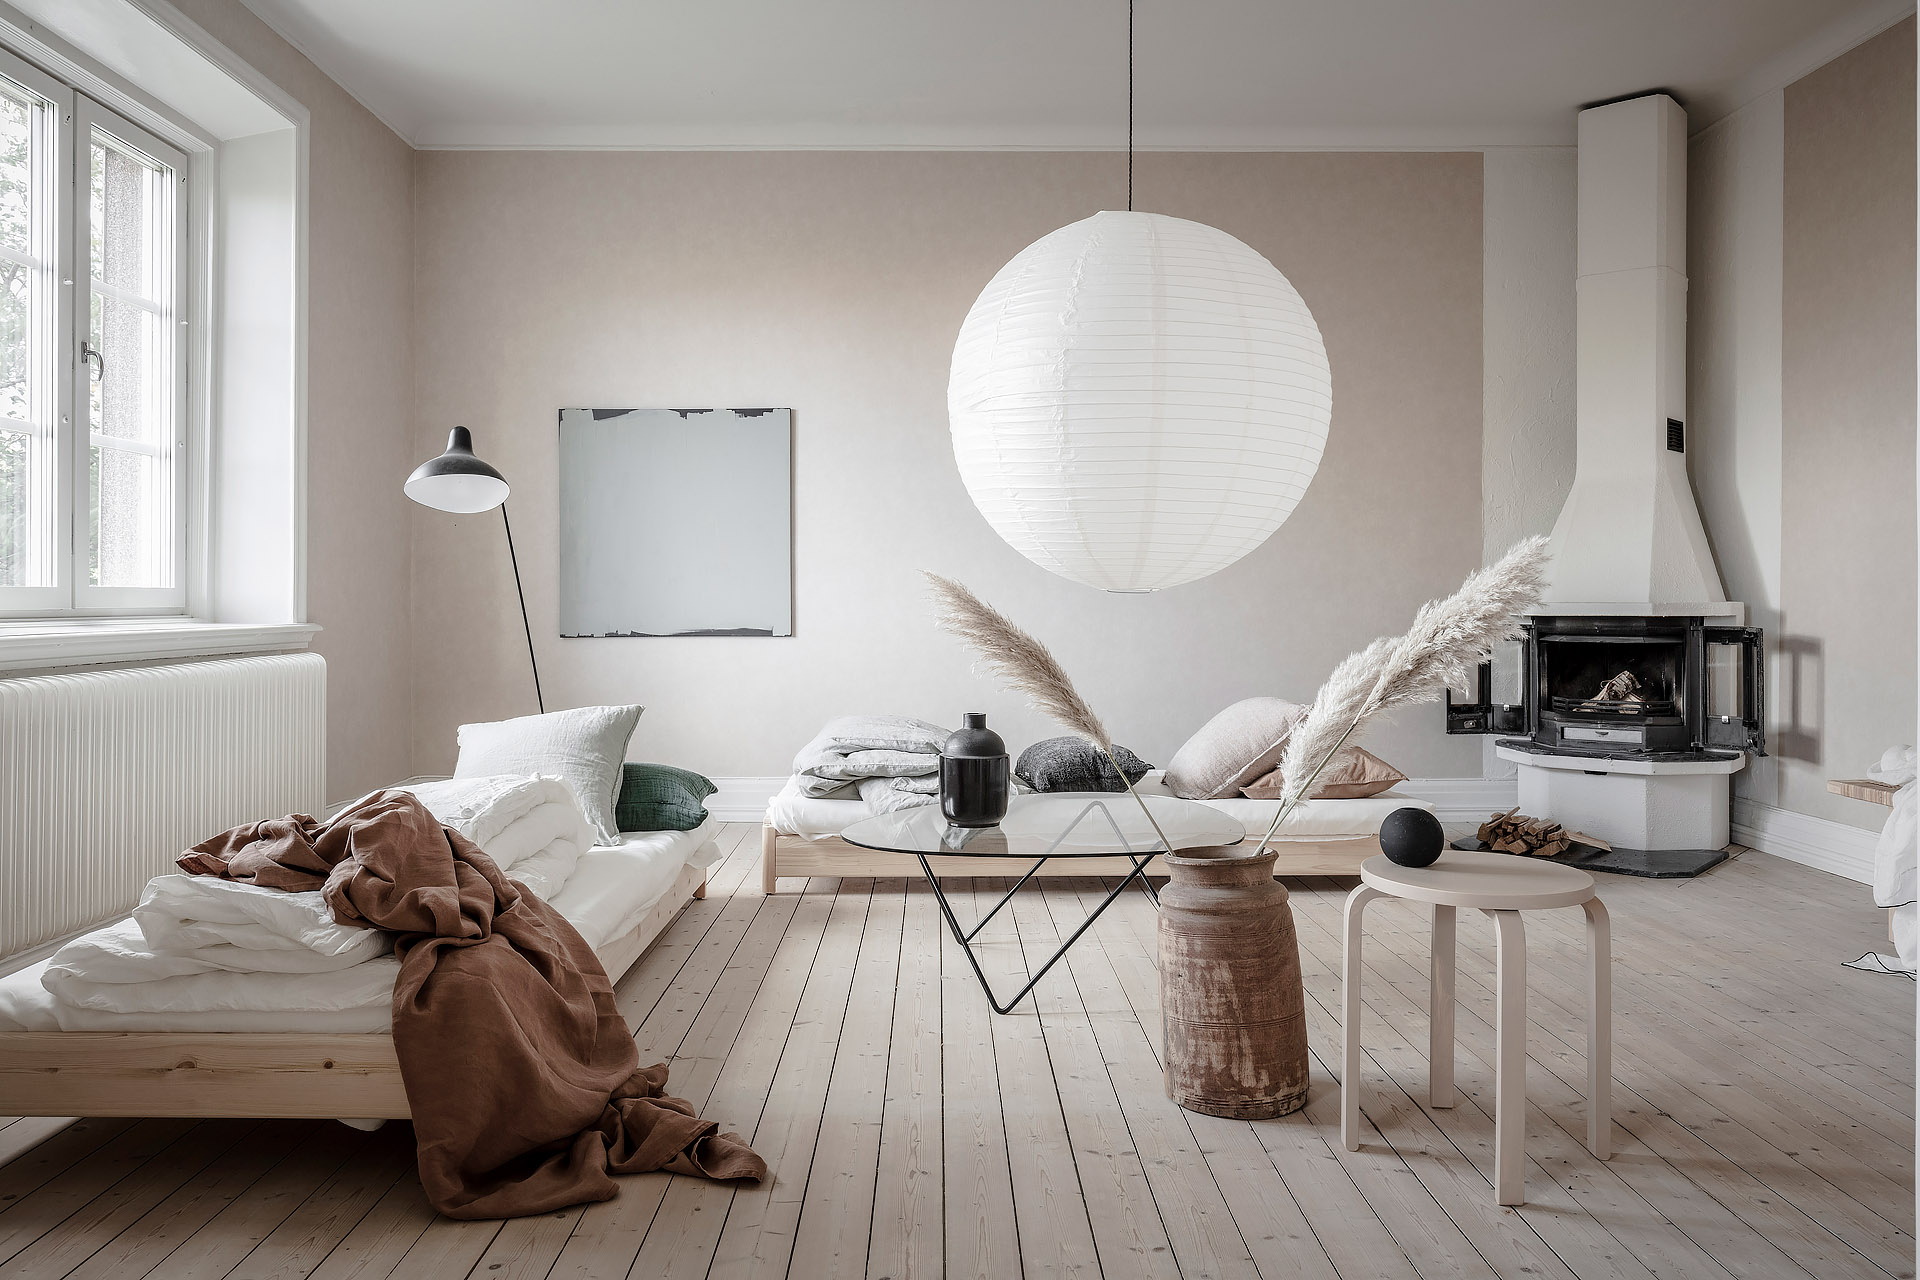 Perfekt This Home Staging Project Done By Talented Stylist Emma Fisher Doesnu0027t Look  Like The Usual Home For Sale, Yet Is Styled In A Very Minimal, Artistic Way.